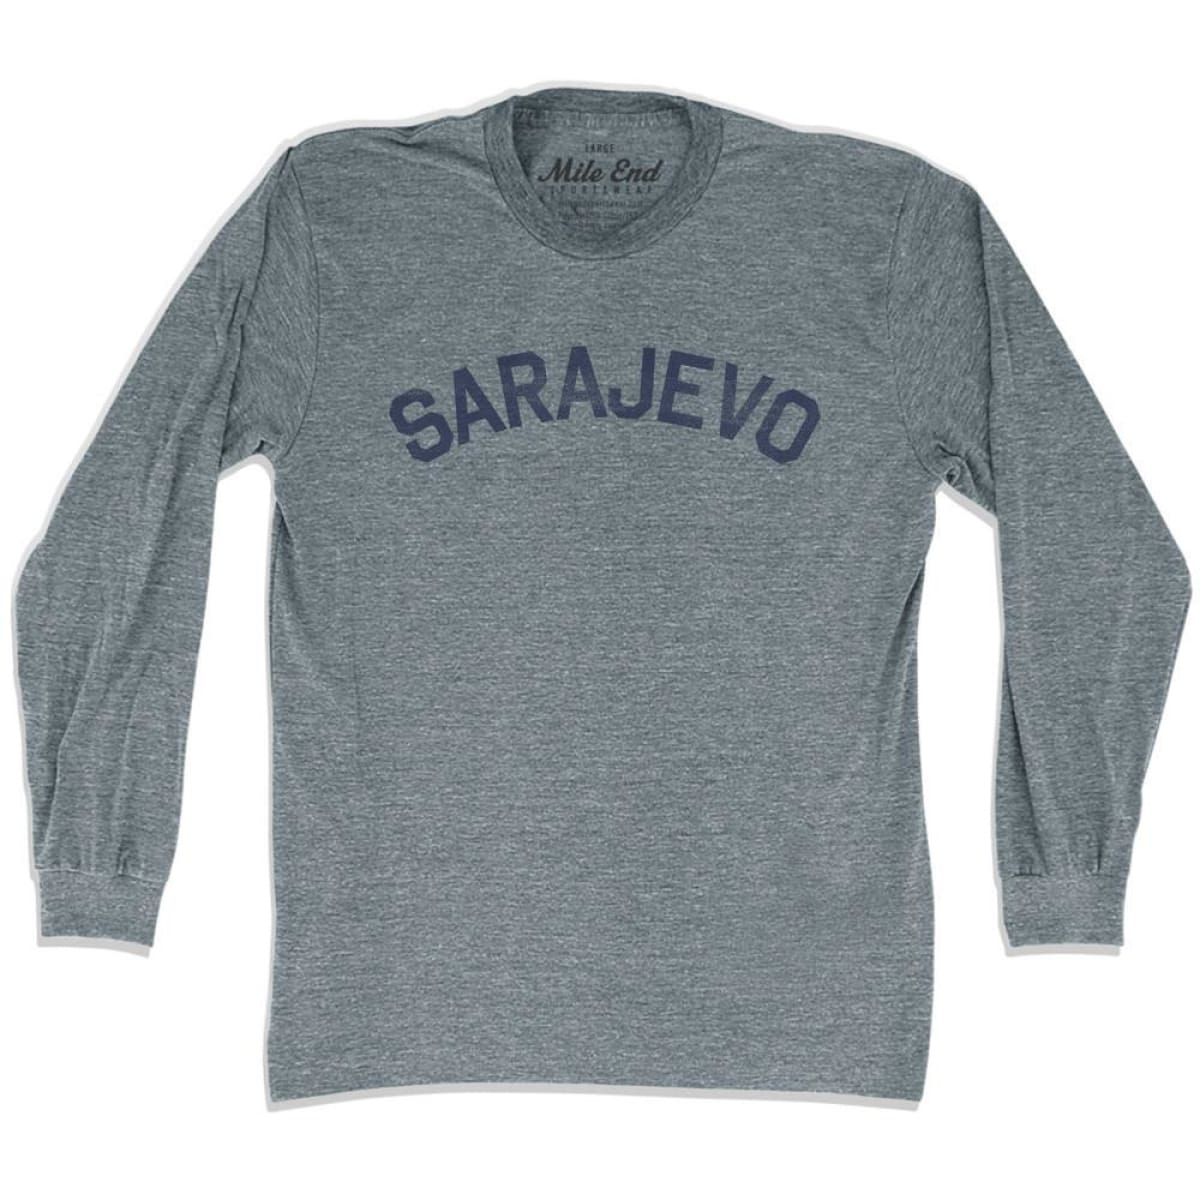 Sarajevo City Vintage Long Sleeve T-shirt - Athletic Grey / Adult X-Small - Mile End City